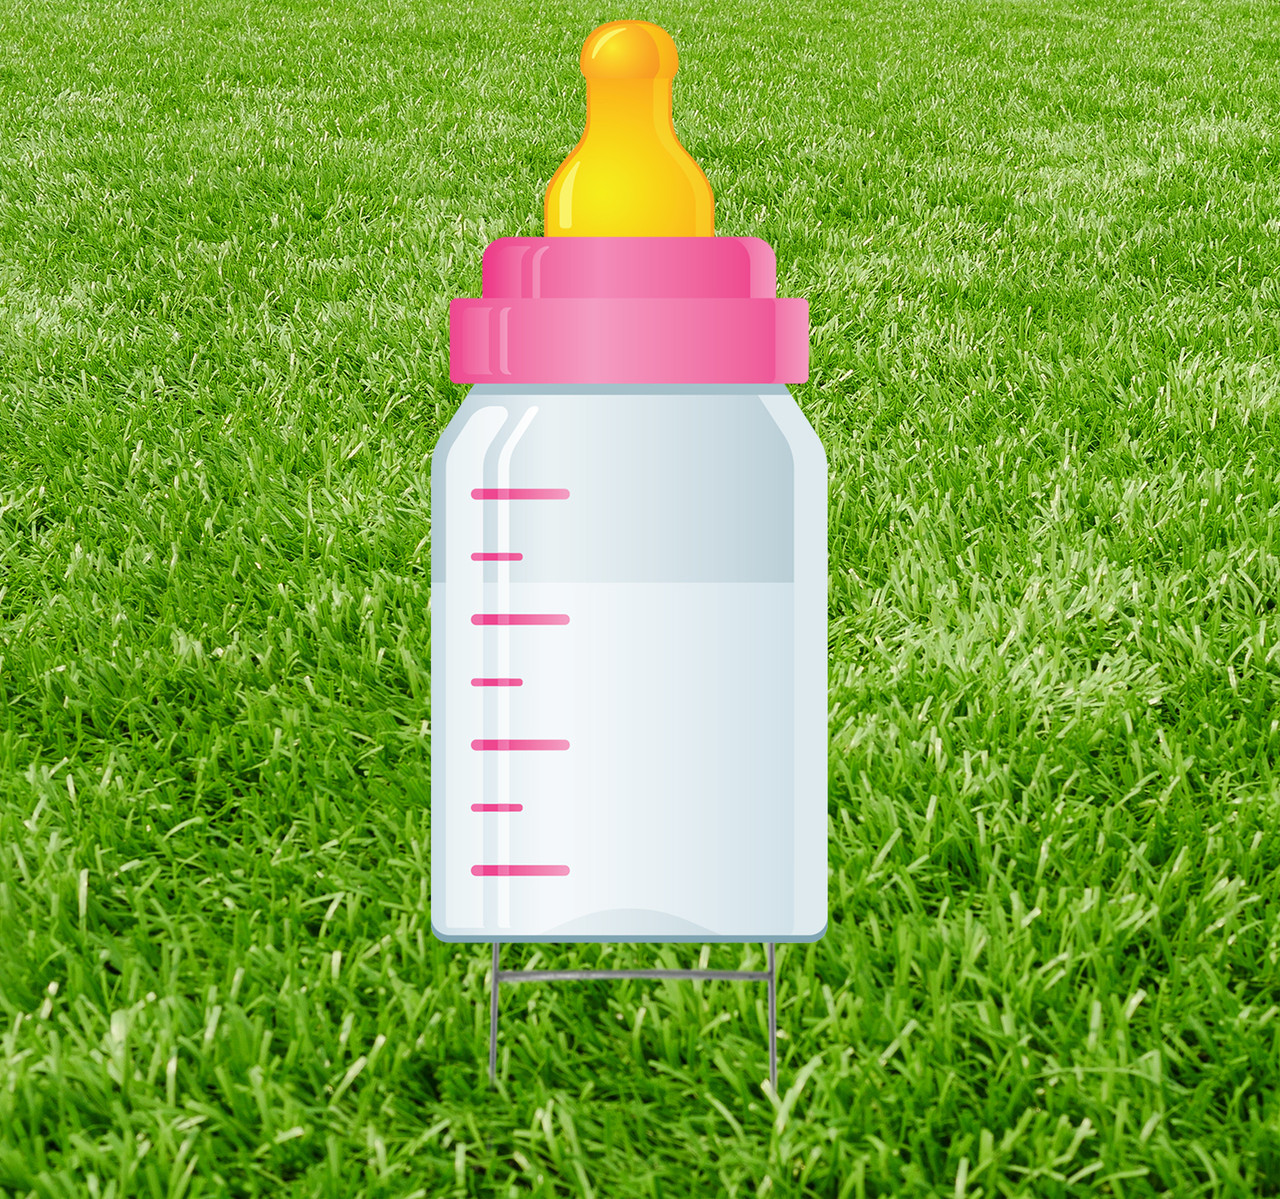 Coroplast outdoor yard sign icon of a pink baby bottle.